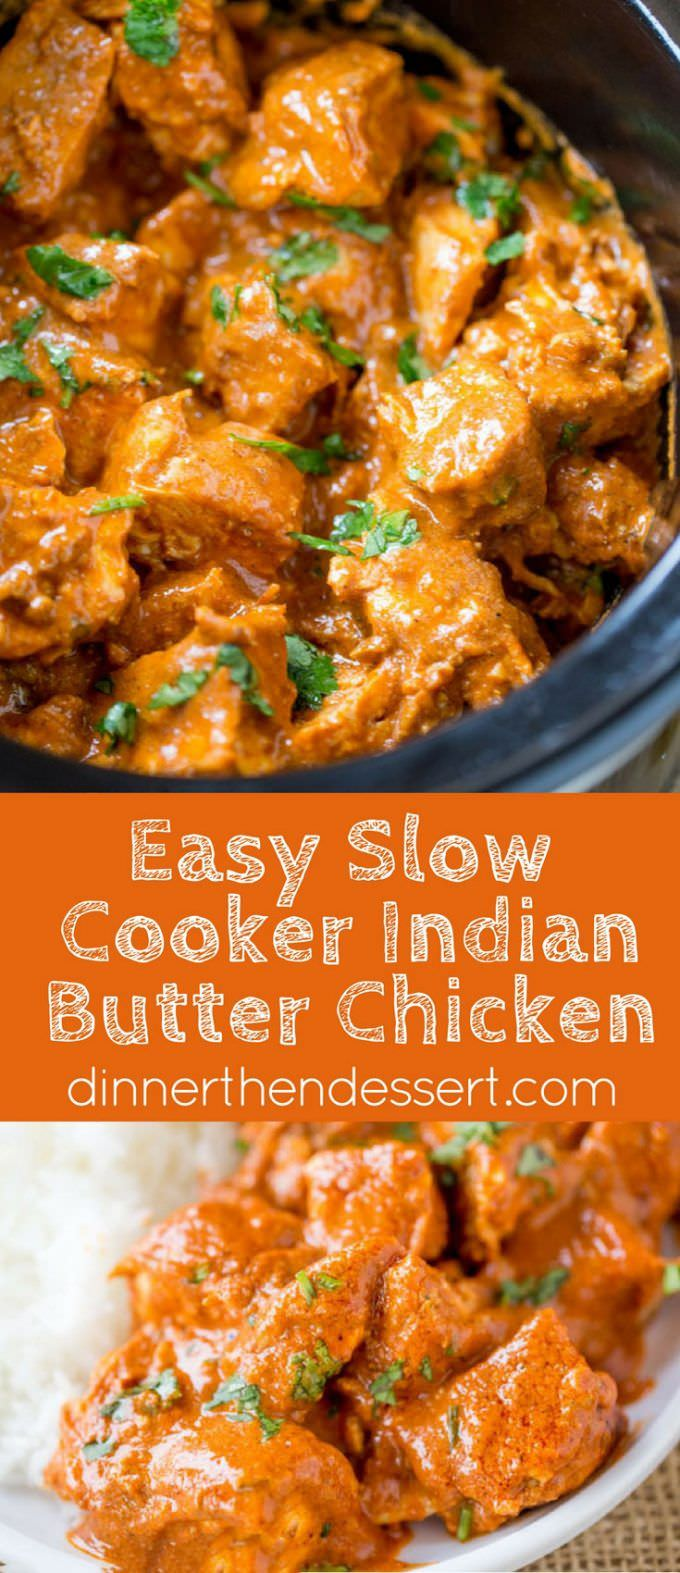 Mouthwatering Slow Cooker Indian Butter Chicken Recipe ...